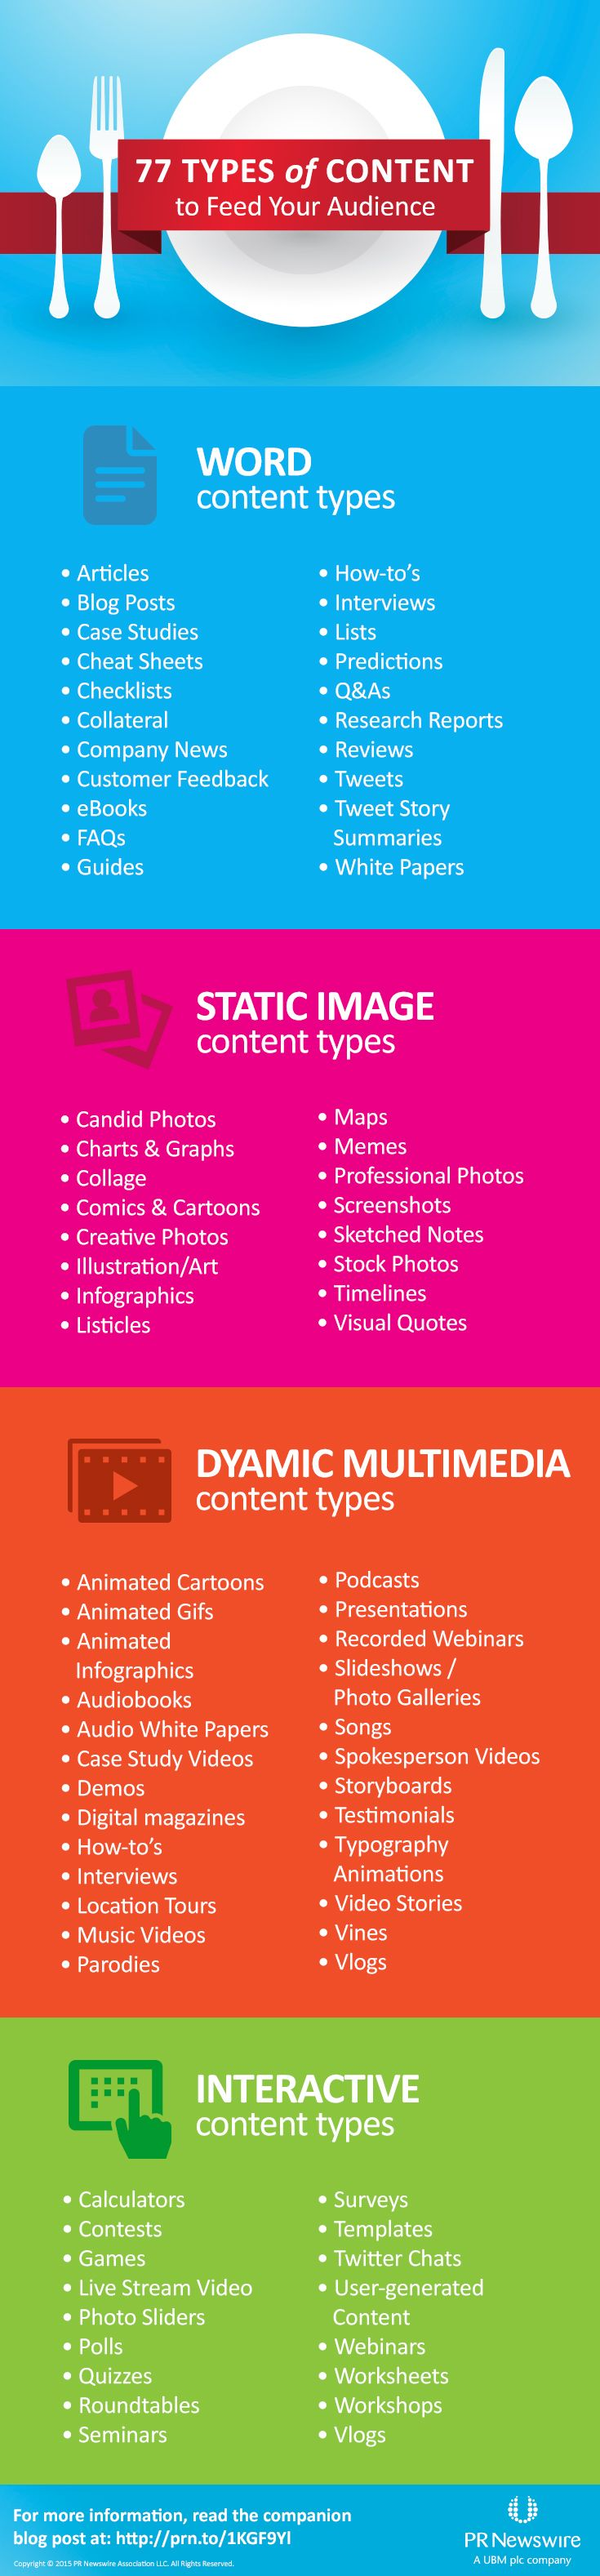 Infographic: 77 Types of #Content to Feed Your Audience. For more content marketing ideas, click through to read the full blog post here: http://www.prnewswire.com/blog/77-types-of-content-to-feed-your-audience-13145.html?tc=pinterest